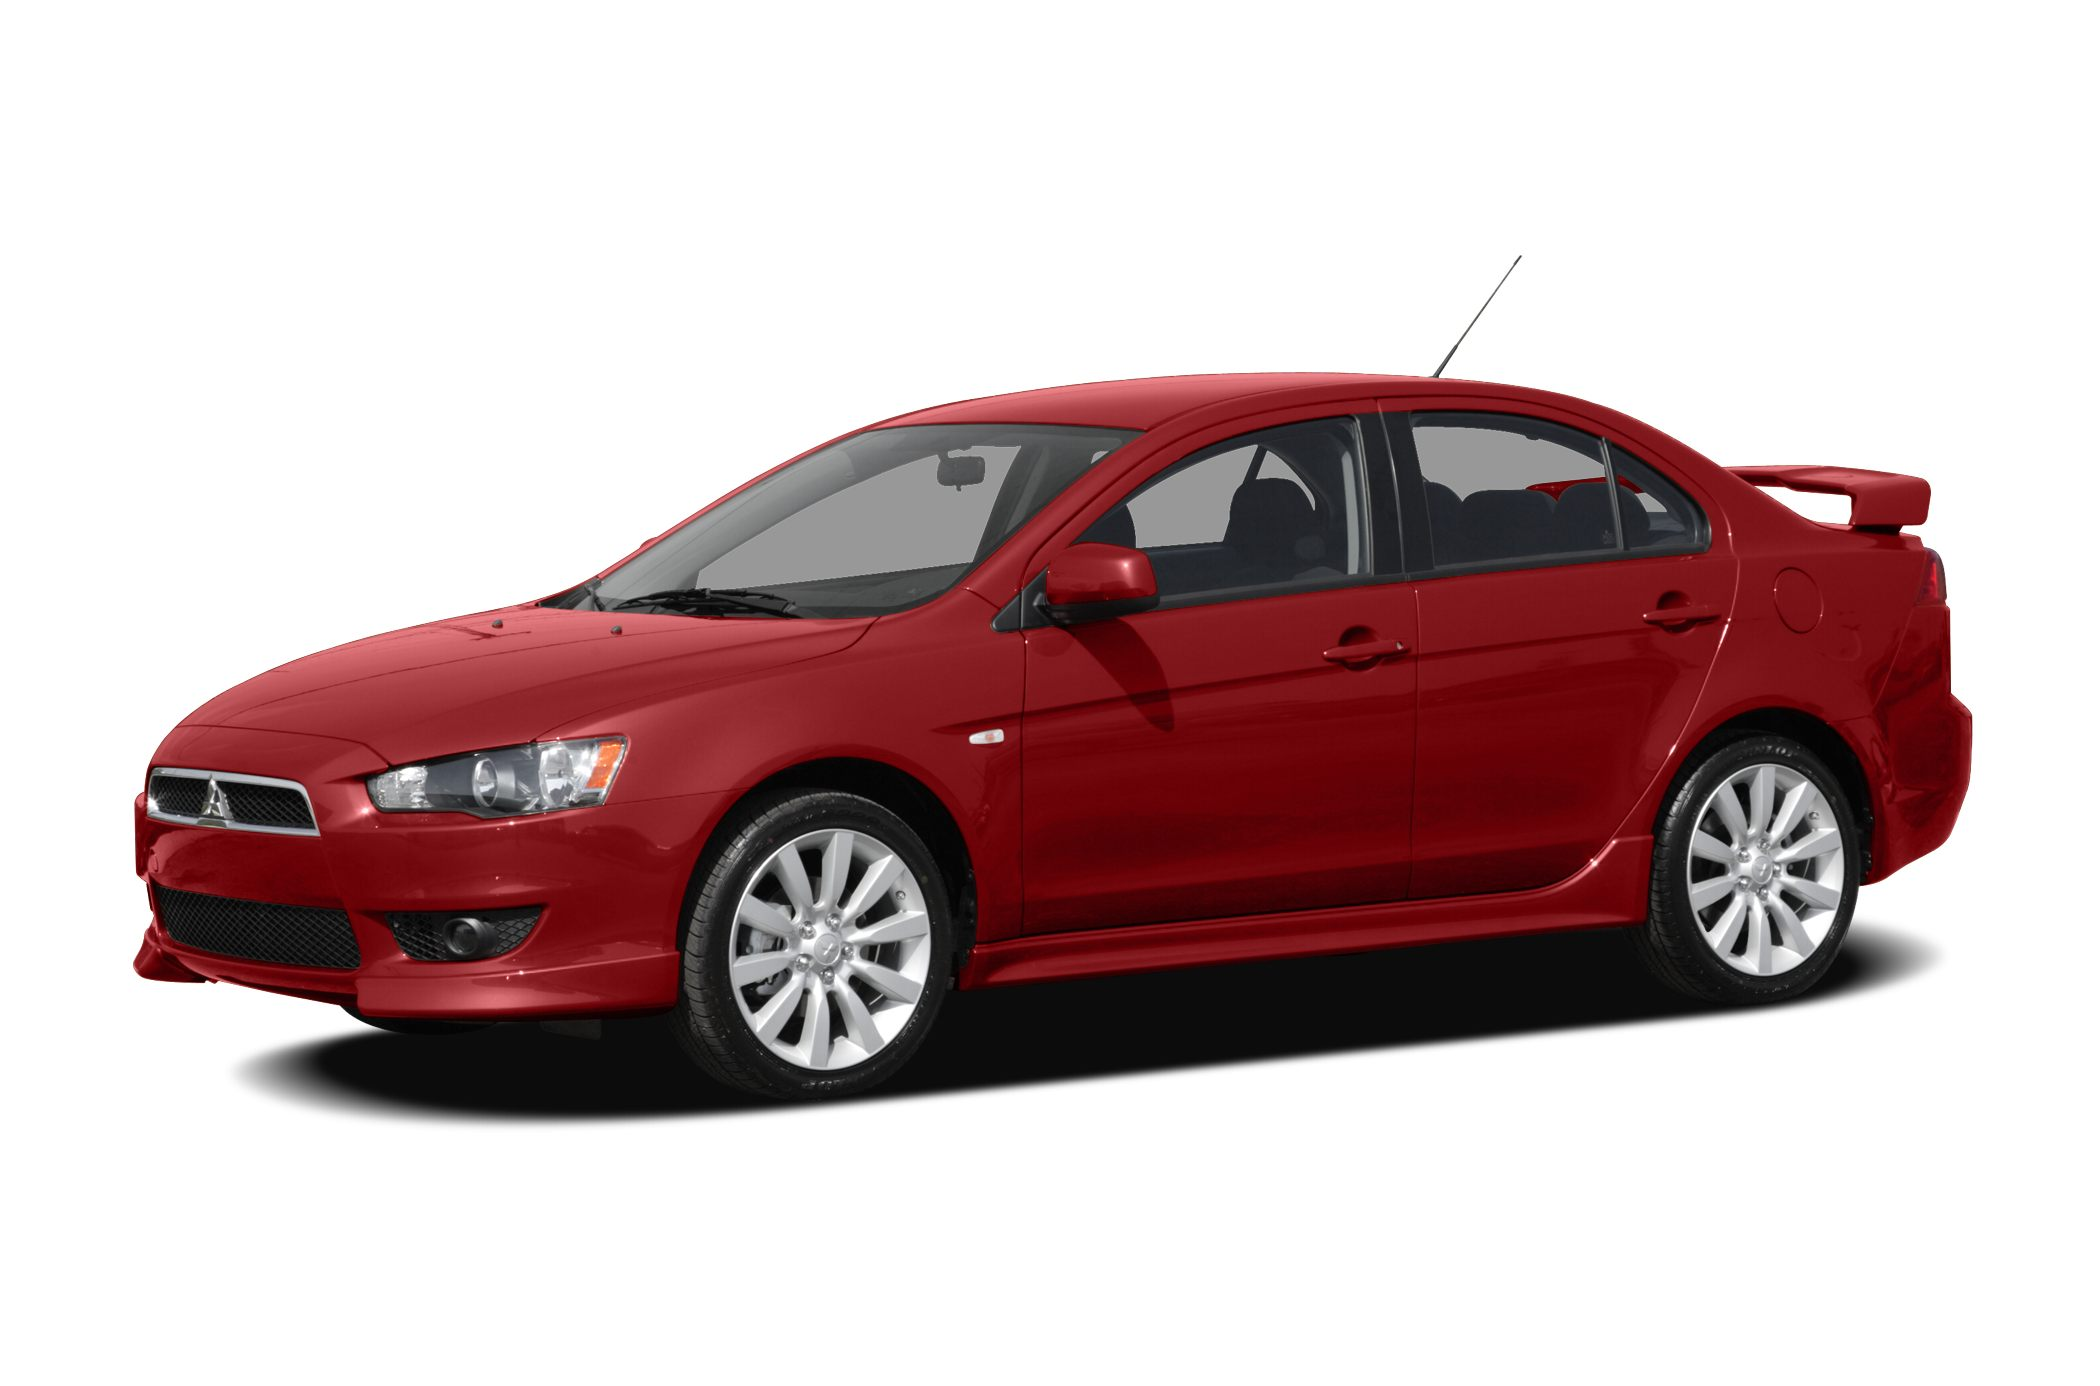 2008 Mitsubishi Lancer GTS Sedan for sale in Fairless Hills for $0 with 40,473 miles